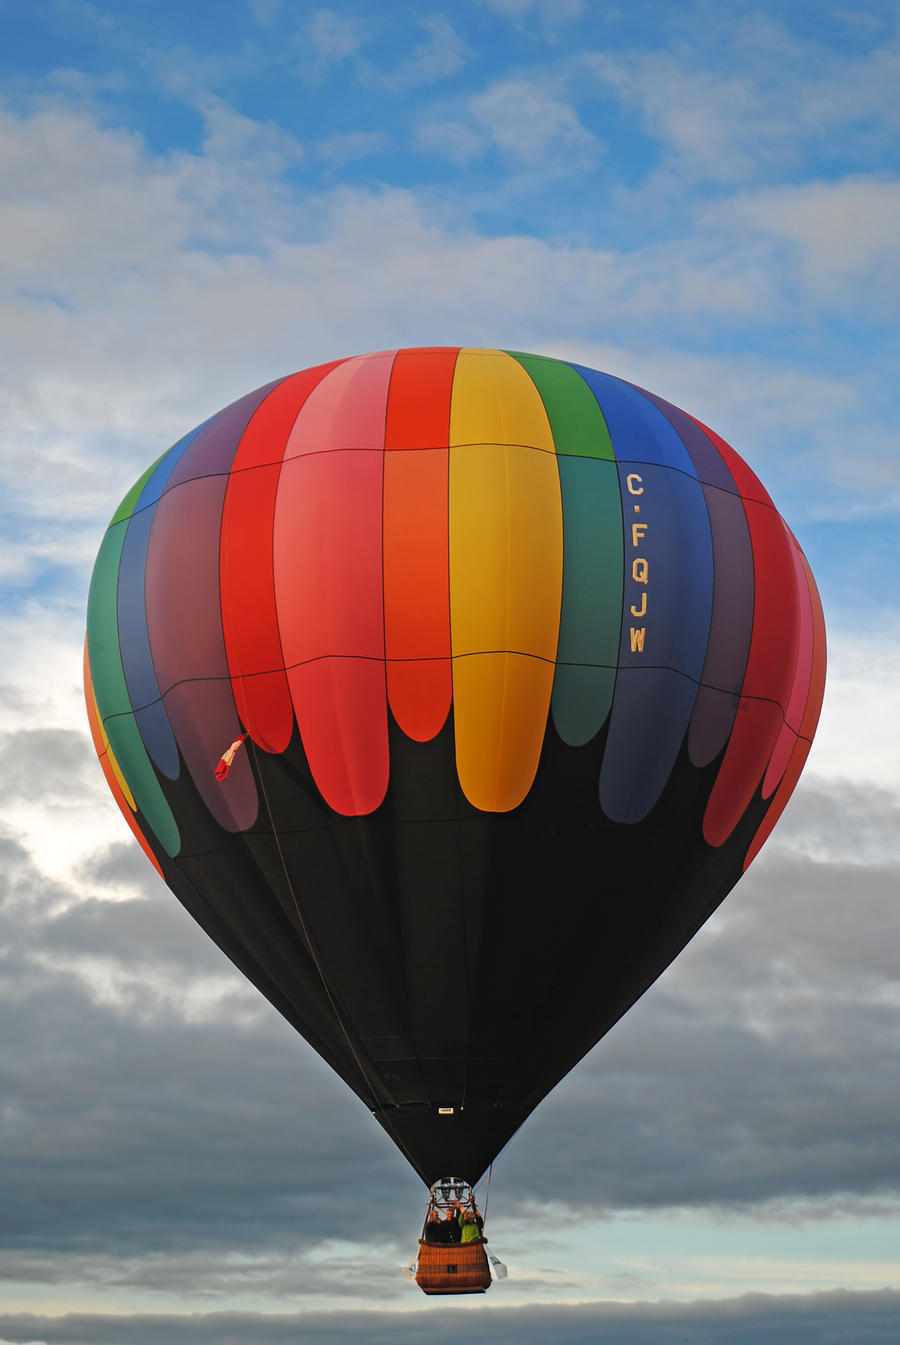 Balloon fiesta 16 by LucieG-Stock